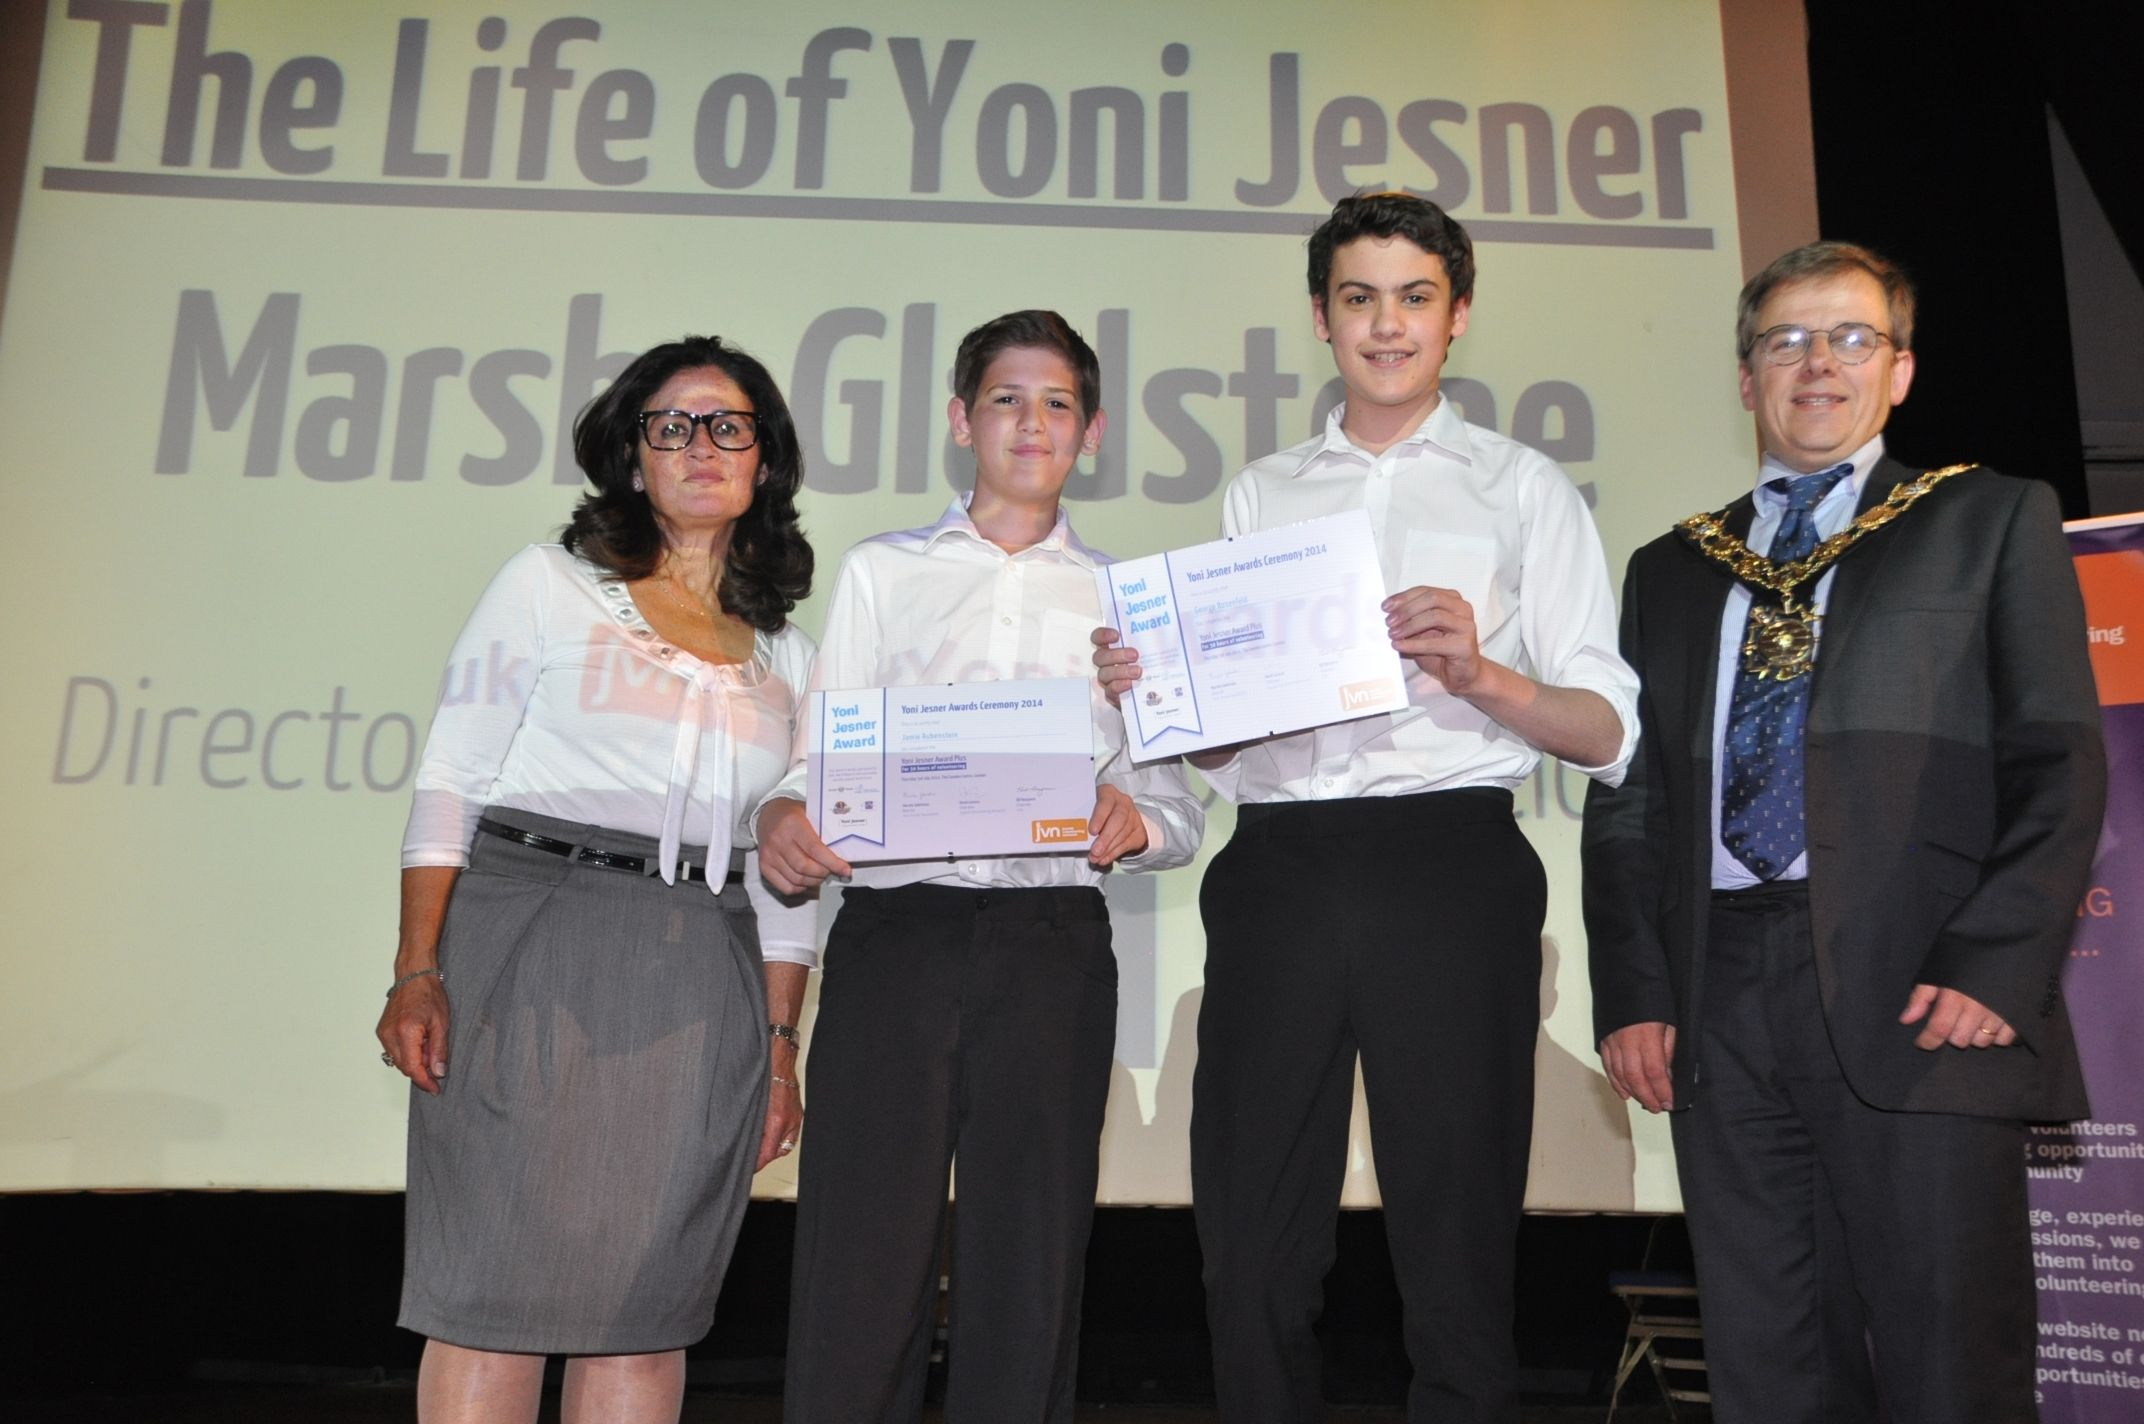 Yoni Jesner Awards 2014